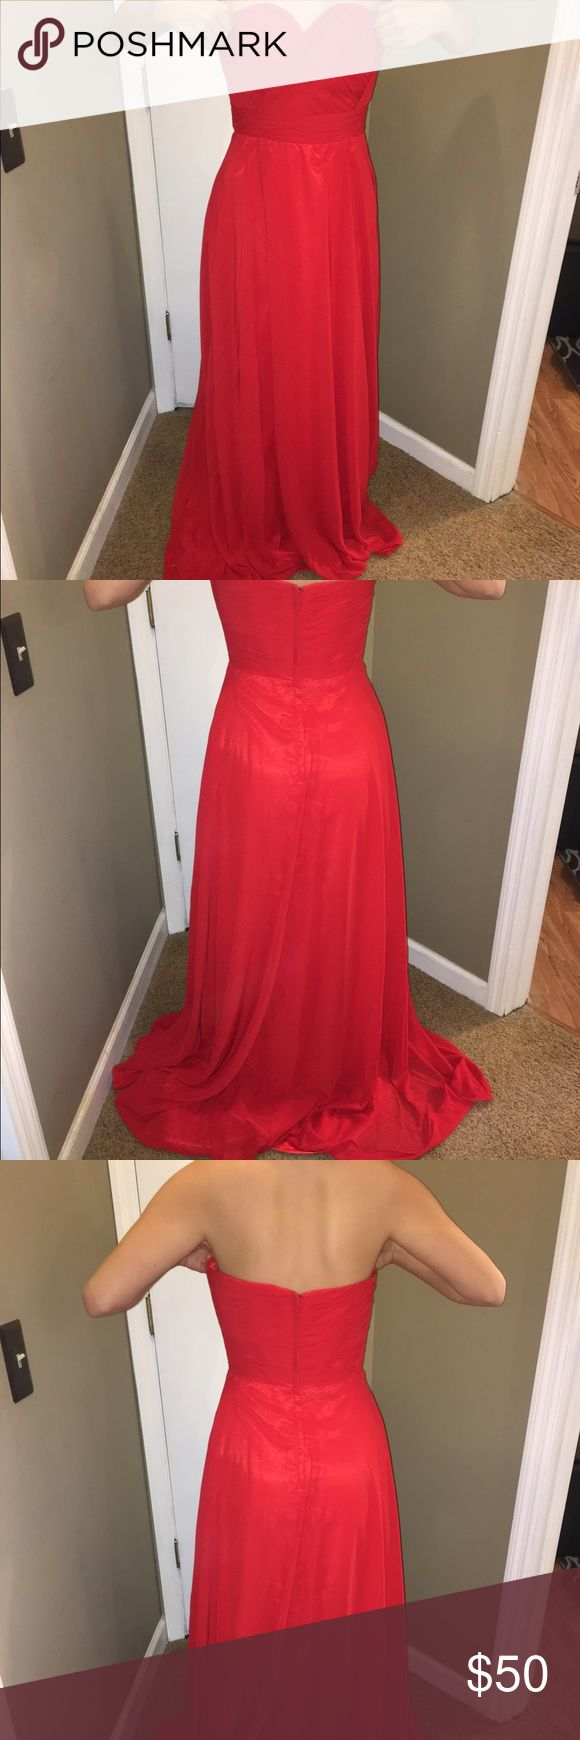 Gorgeous red prom dress Gorgeous red prom dress, never been worn, never hemmed so most likely it would need to be hemmed. I'm not wearing shoes in any of these photos. It's so simple! Perfect for a special occasion. Dresses Prom